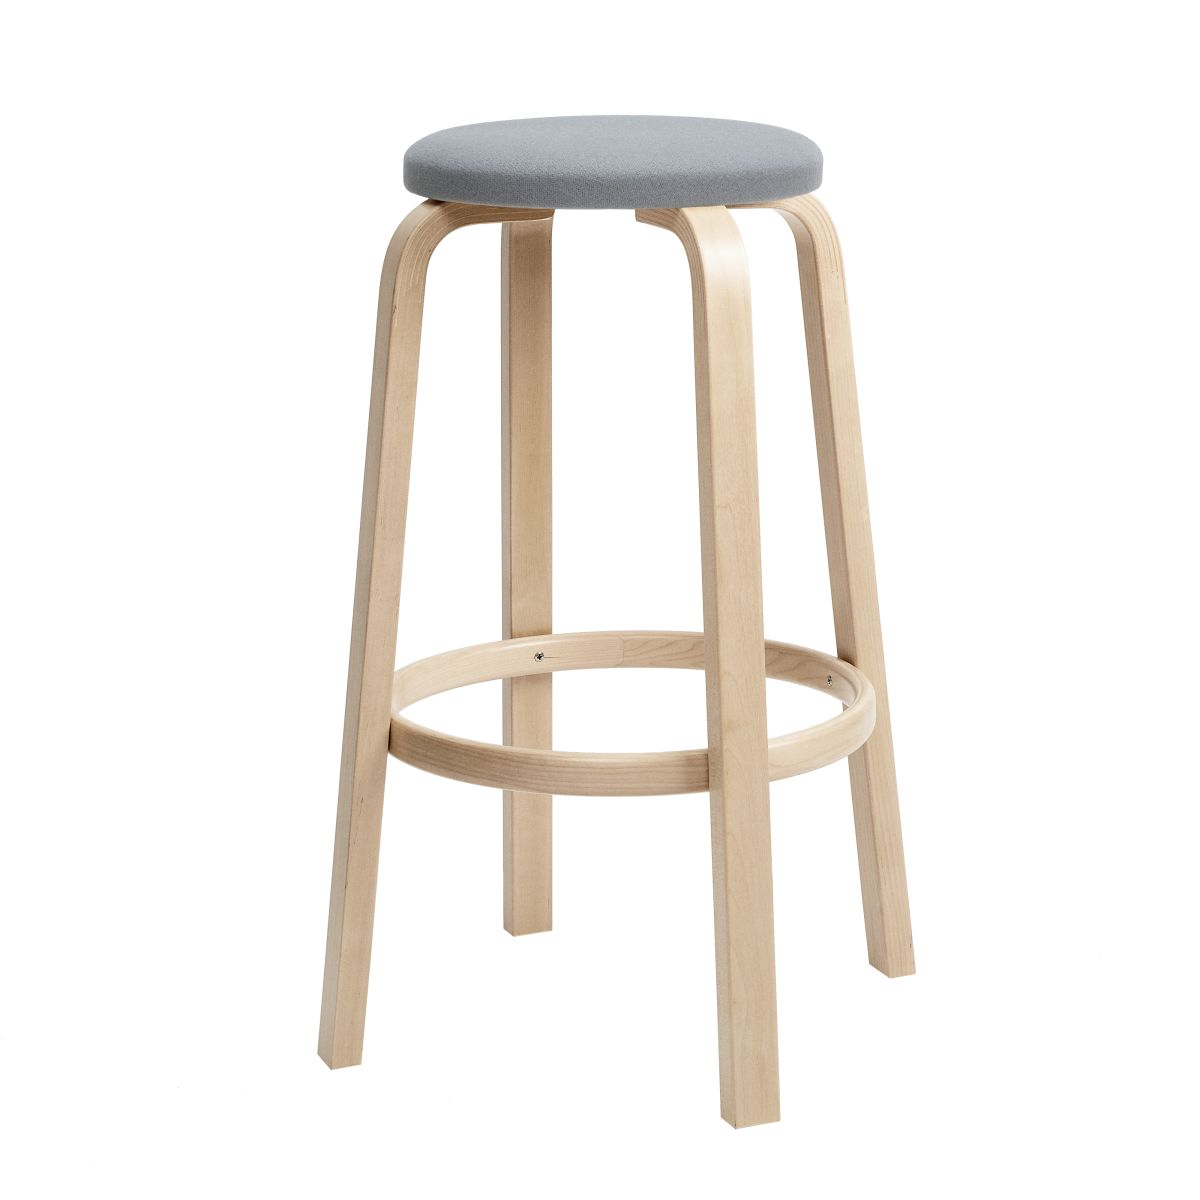 Bar-Stool-64-75cm-clear-lacquered-seat-fabric-upholstery_F-2912678